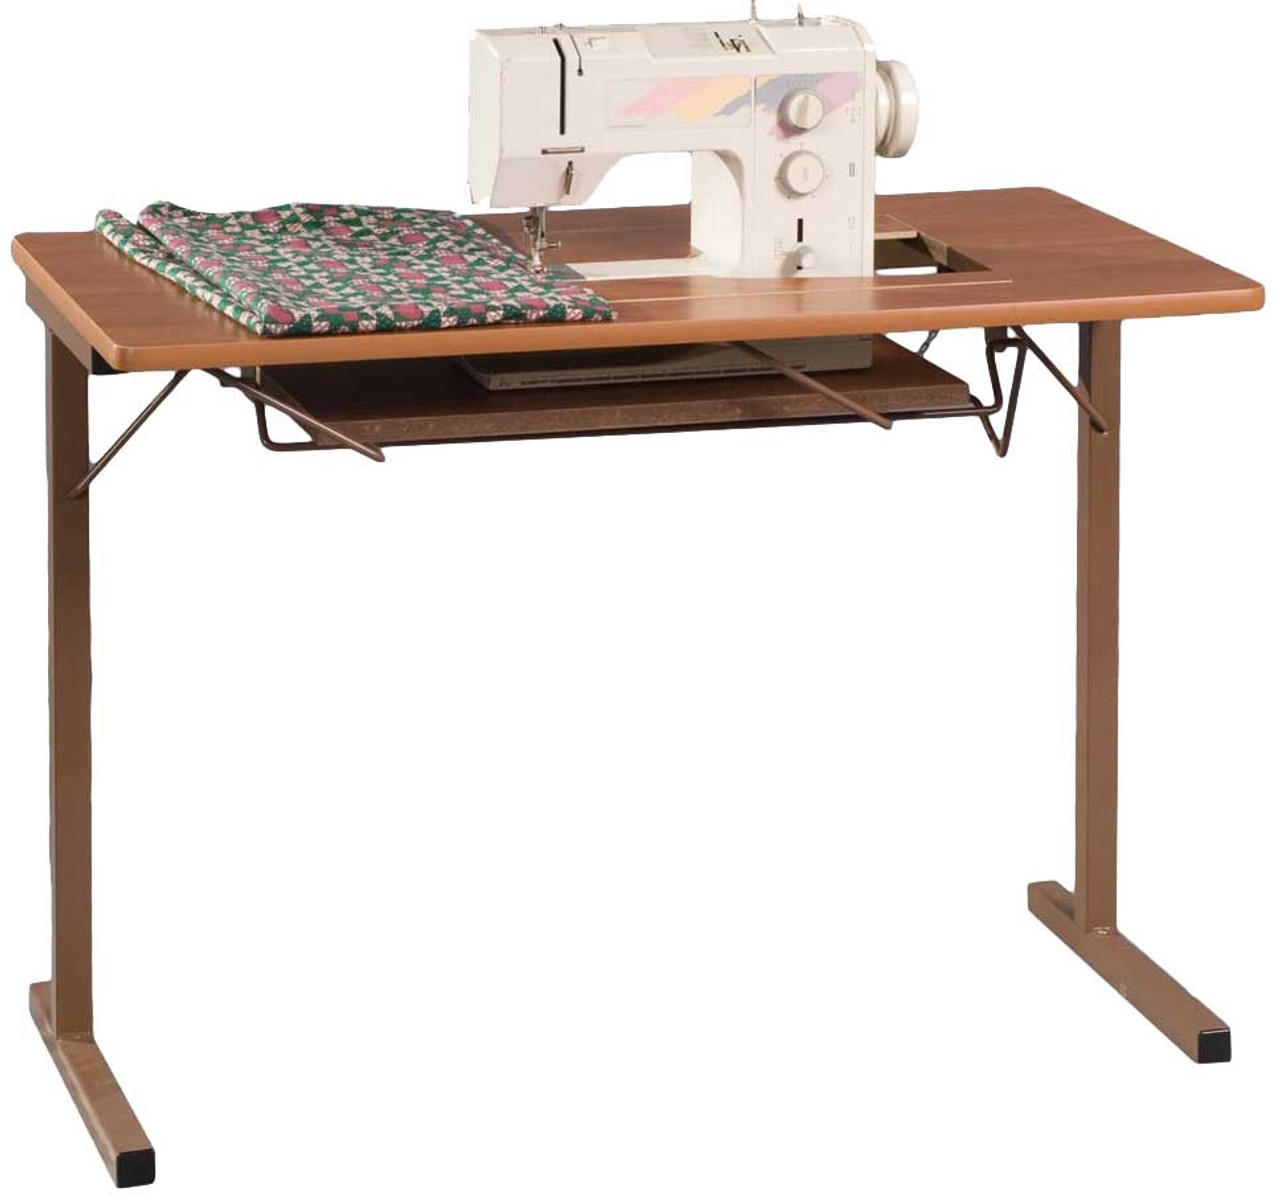 Fashion Sewing Cabinets 299 Foldable Machine Table Rustic Maple